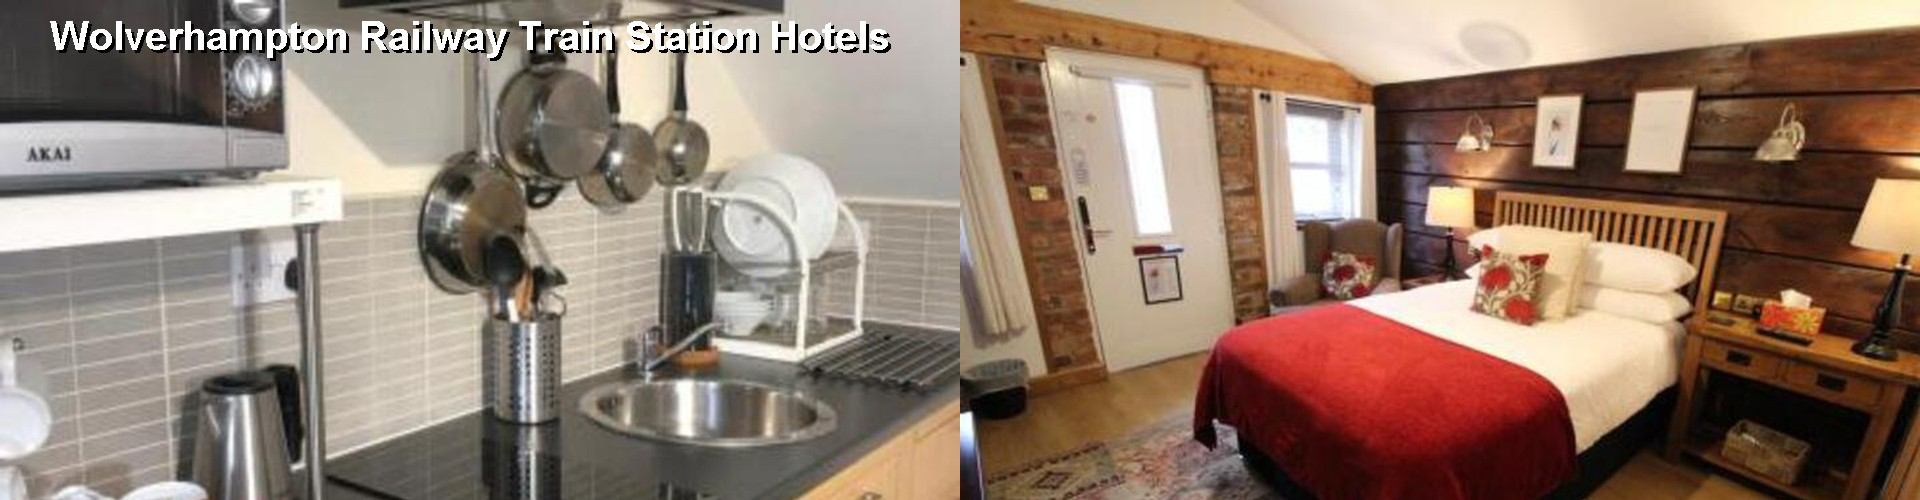 5 Best Hotels near Wolverhampton Railway Train Station